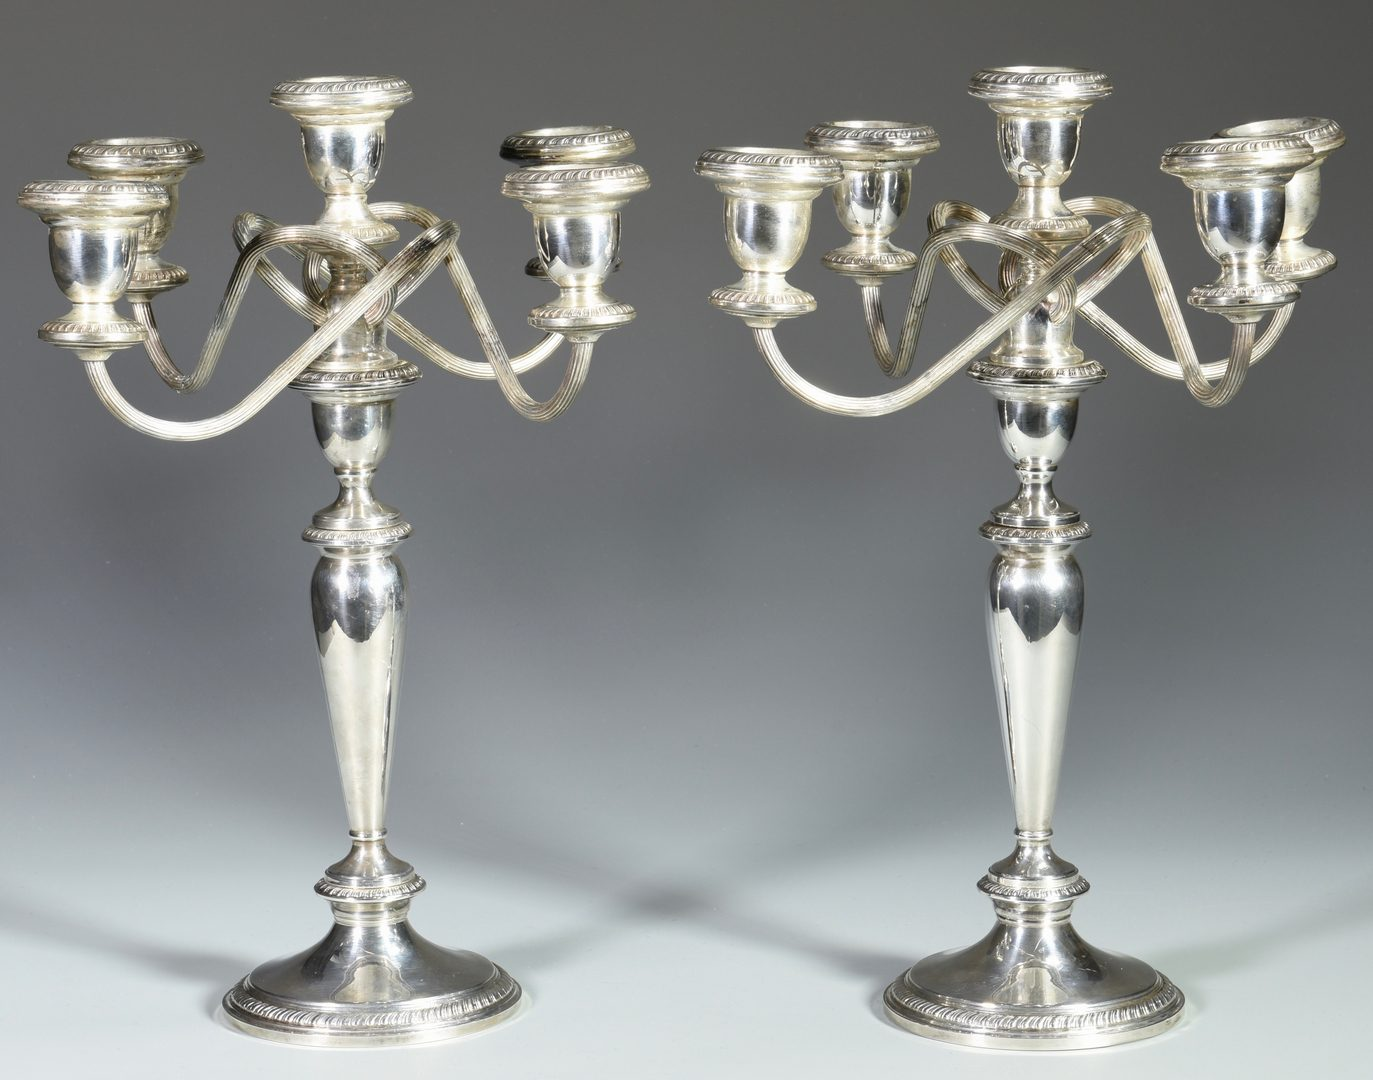 Lot 155: Pair of Poole Sterling Silver 5-Arm Candelabra